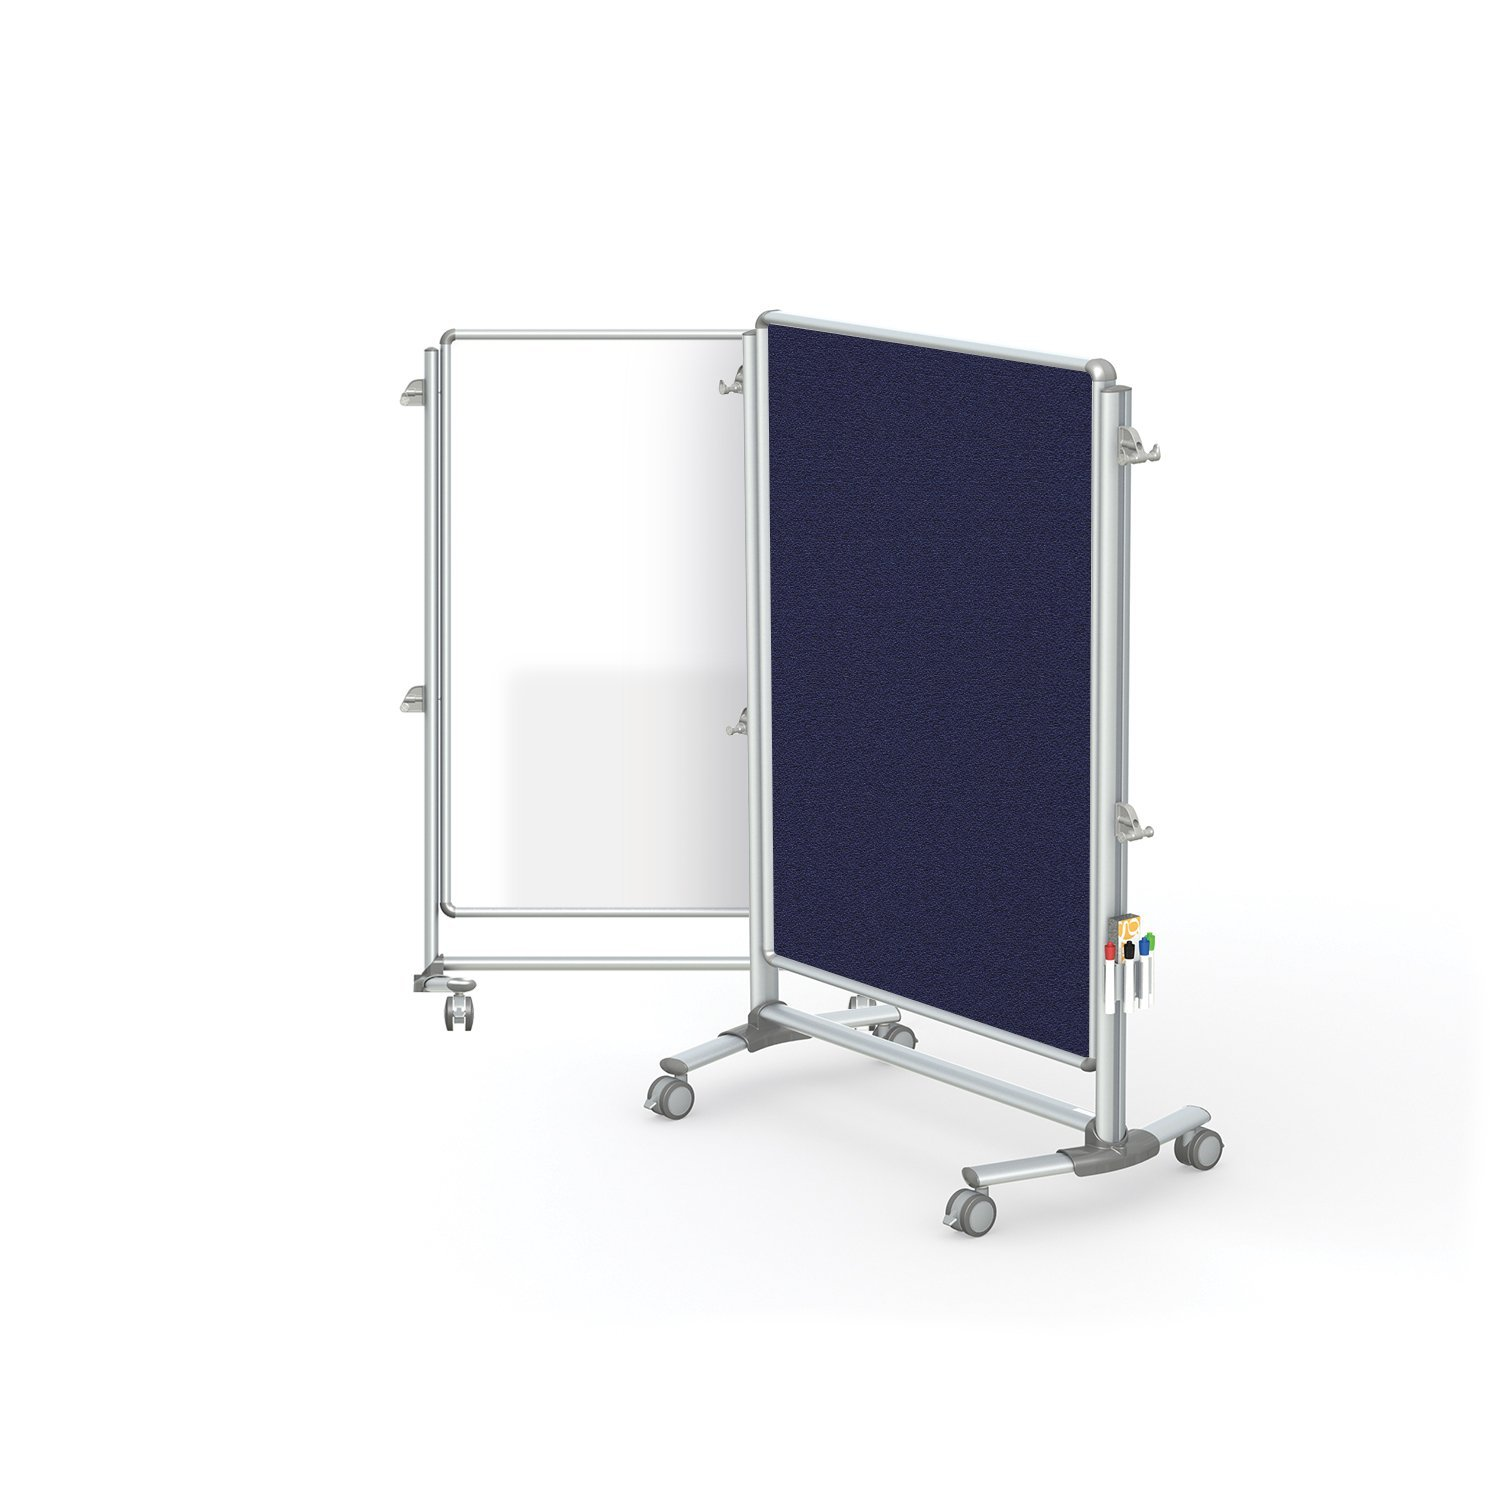 "Ghent 57-3/8"" x 40-3/8"" Nexus Jr. Partition, Magnetic Whiteboard/Bulletin Board, Double-Sided (NEX223MFP-93)"